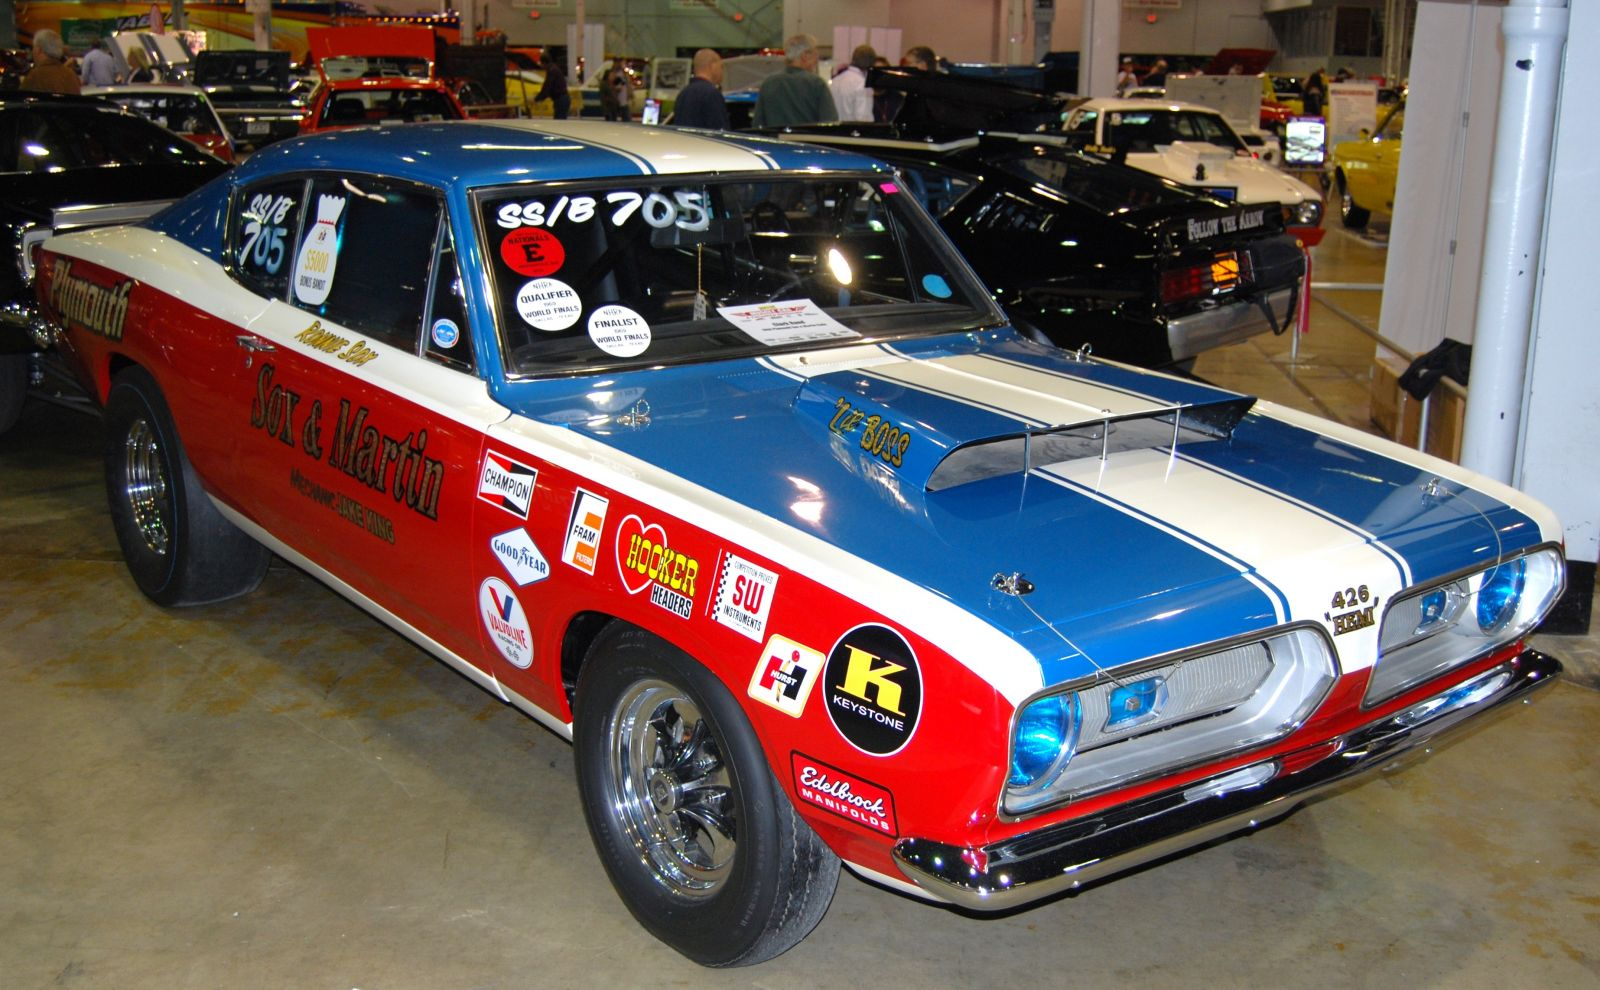 Real Deal Sox & Martin Super Stock Hemi Barracuda | Hotrod Hotline